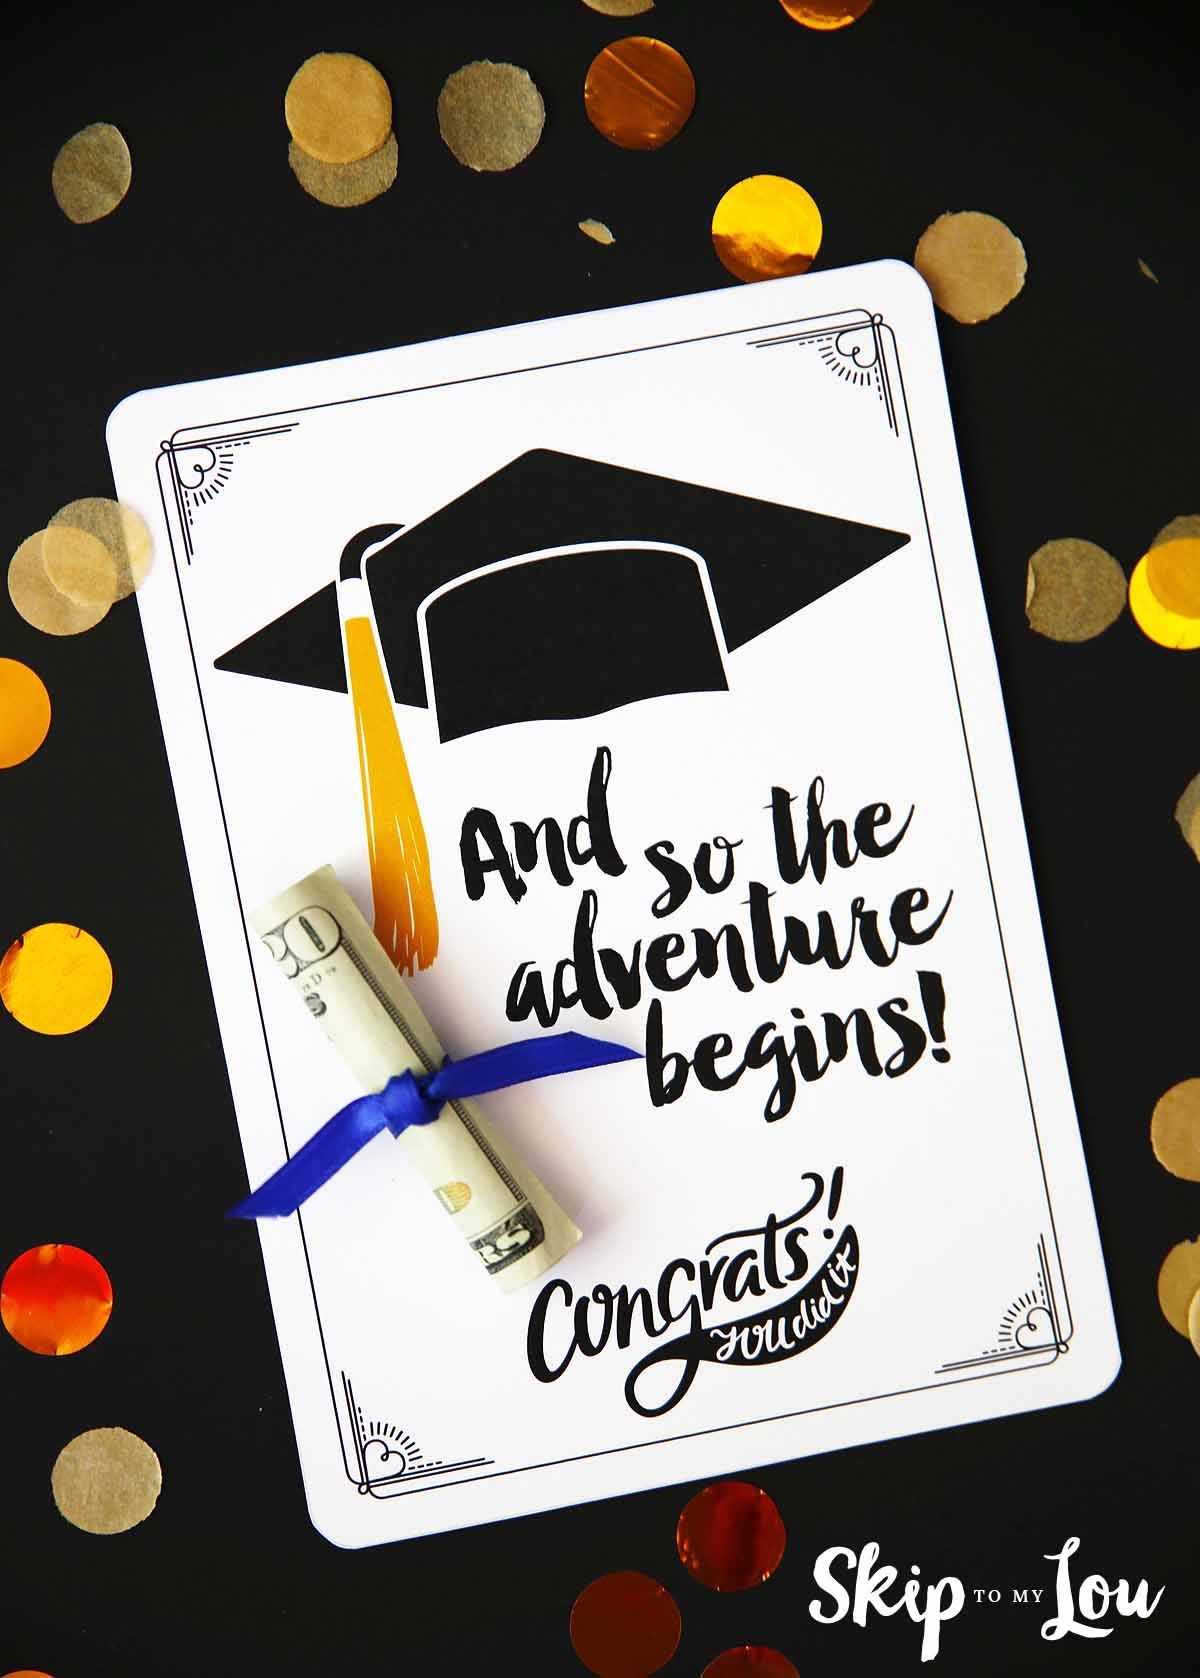 Free Graduation Cards With Positive Quotes And Cash Gift Ideas